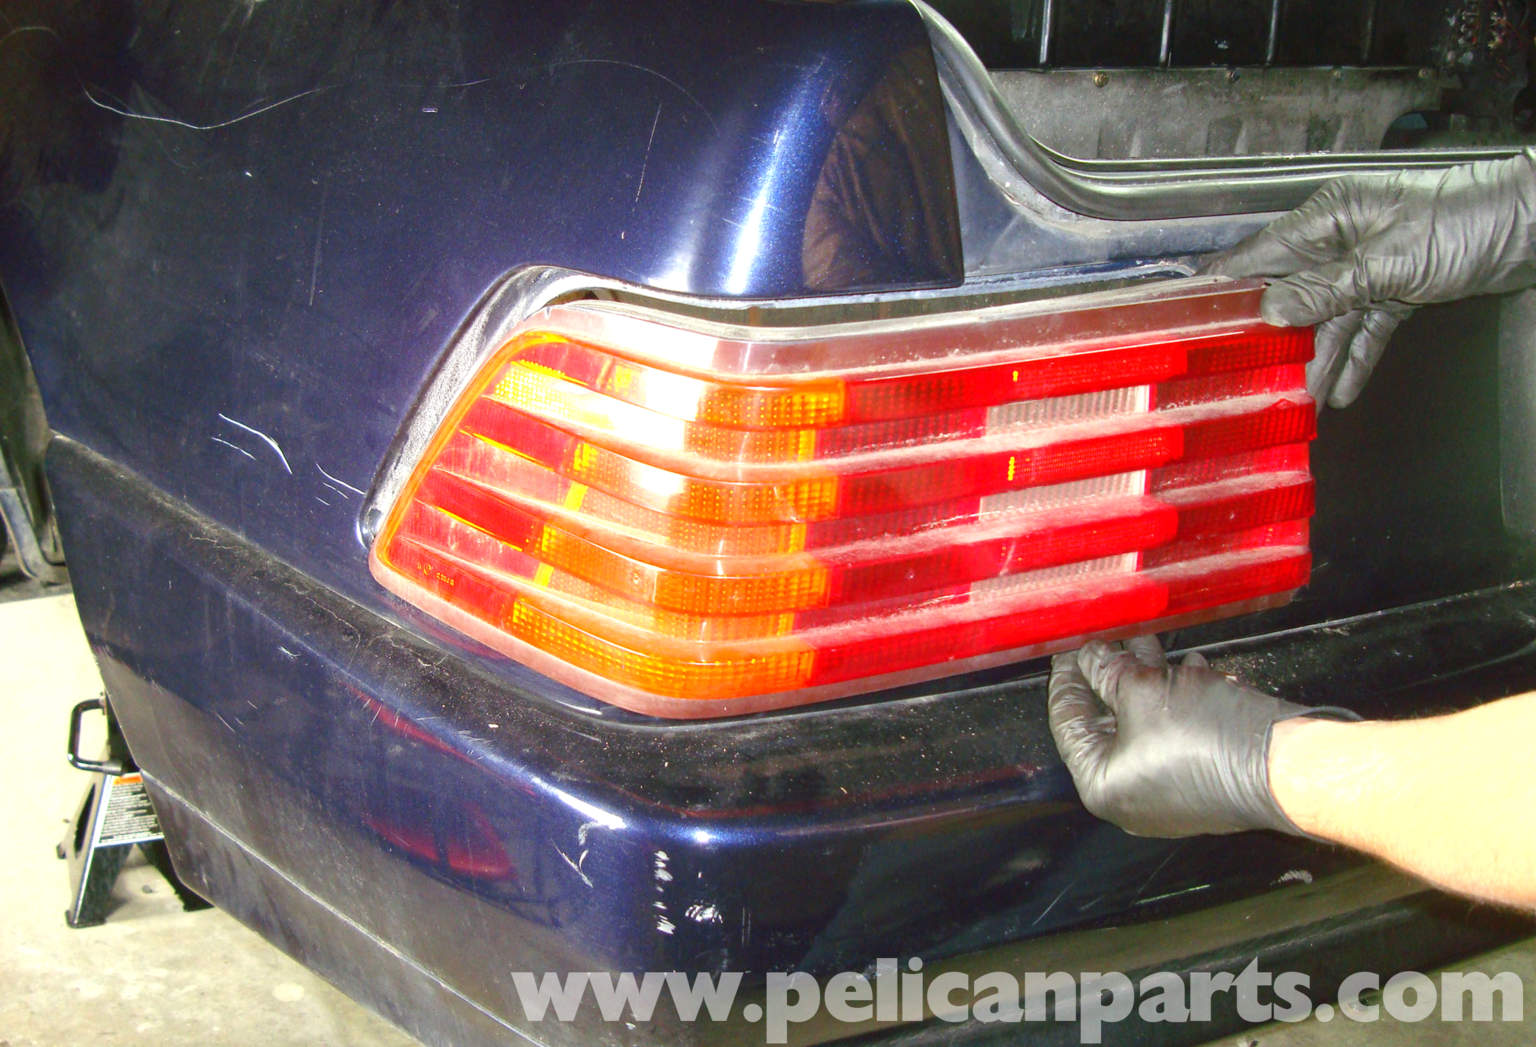 Pelican technical article mercedes benz w129 r129 for Mercedes benz tail light lens